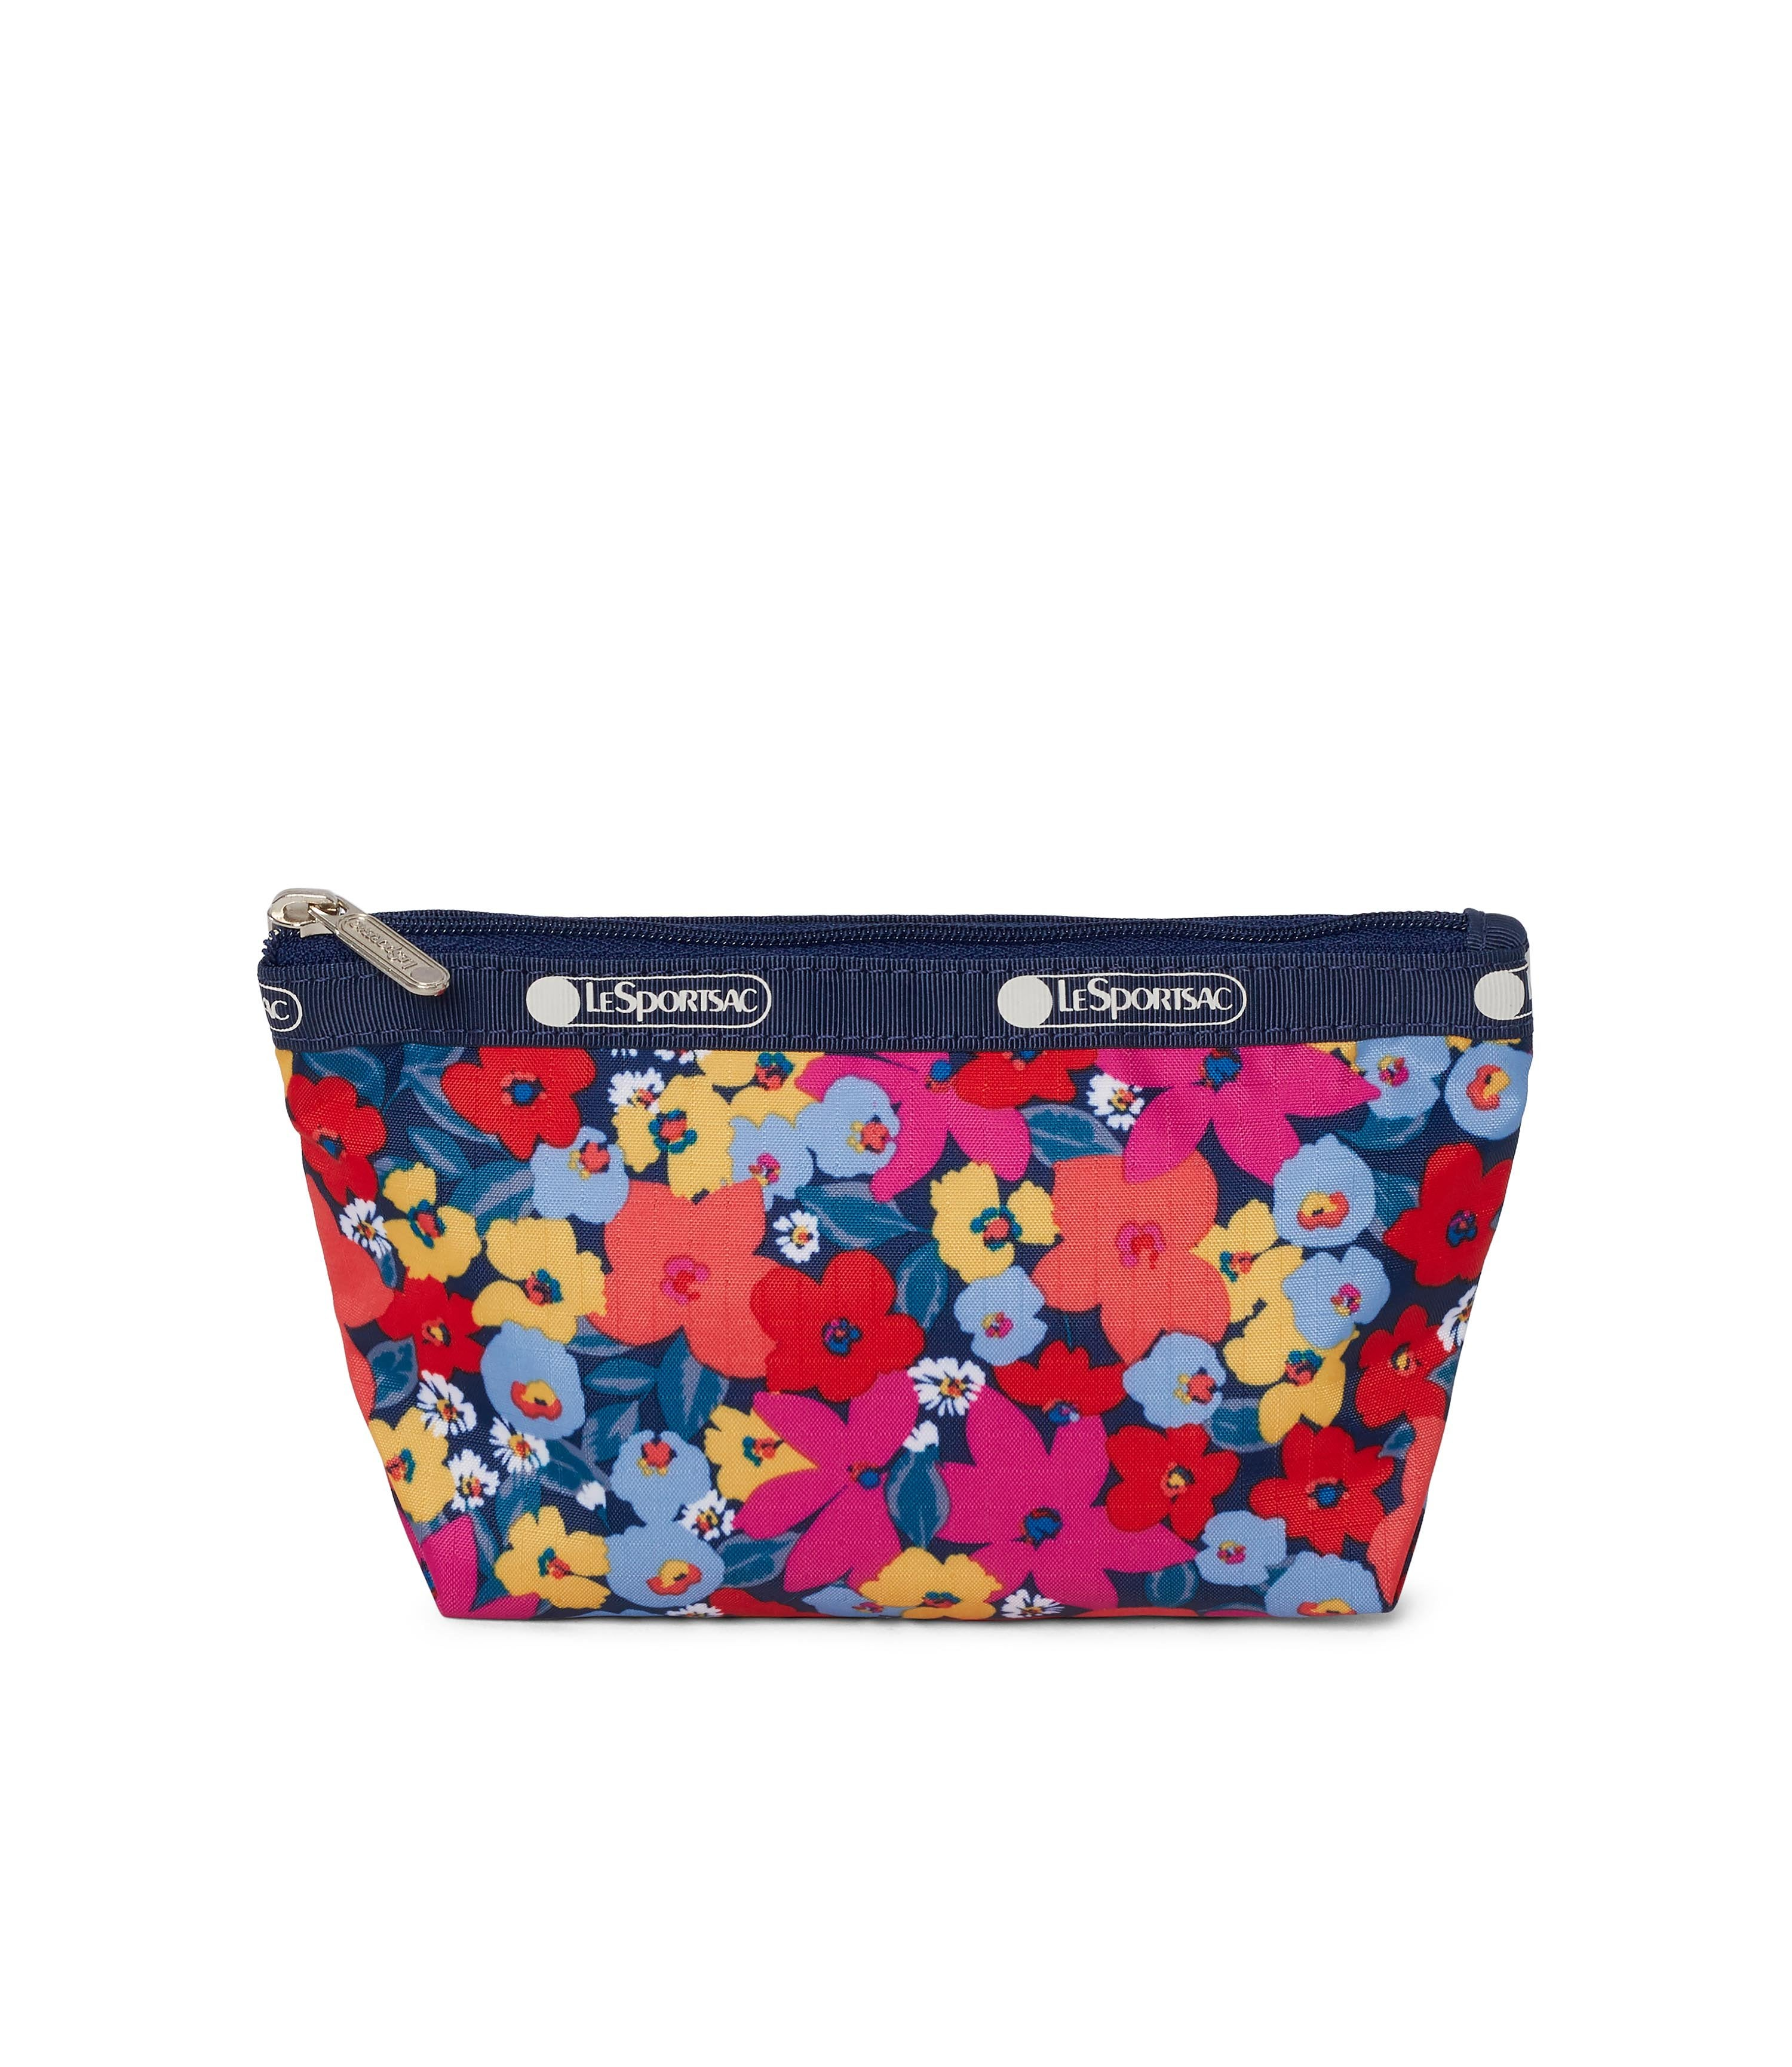 LeSportsac - Small Sloan Cosmetic - Accessories - Bright Isle Floral print